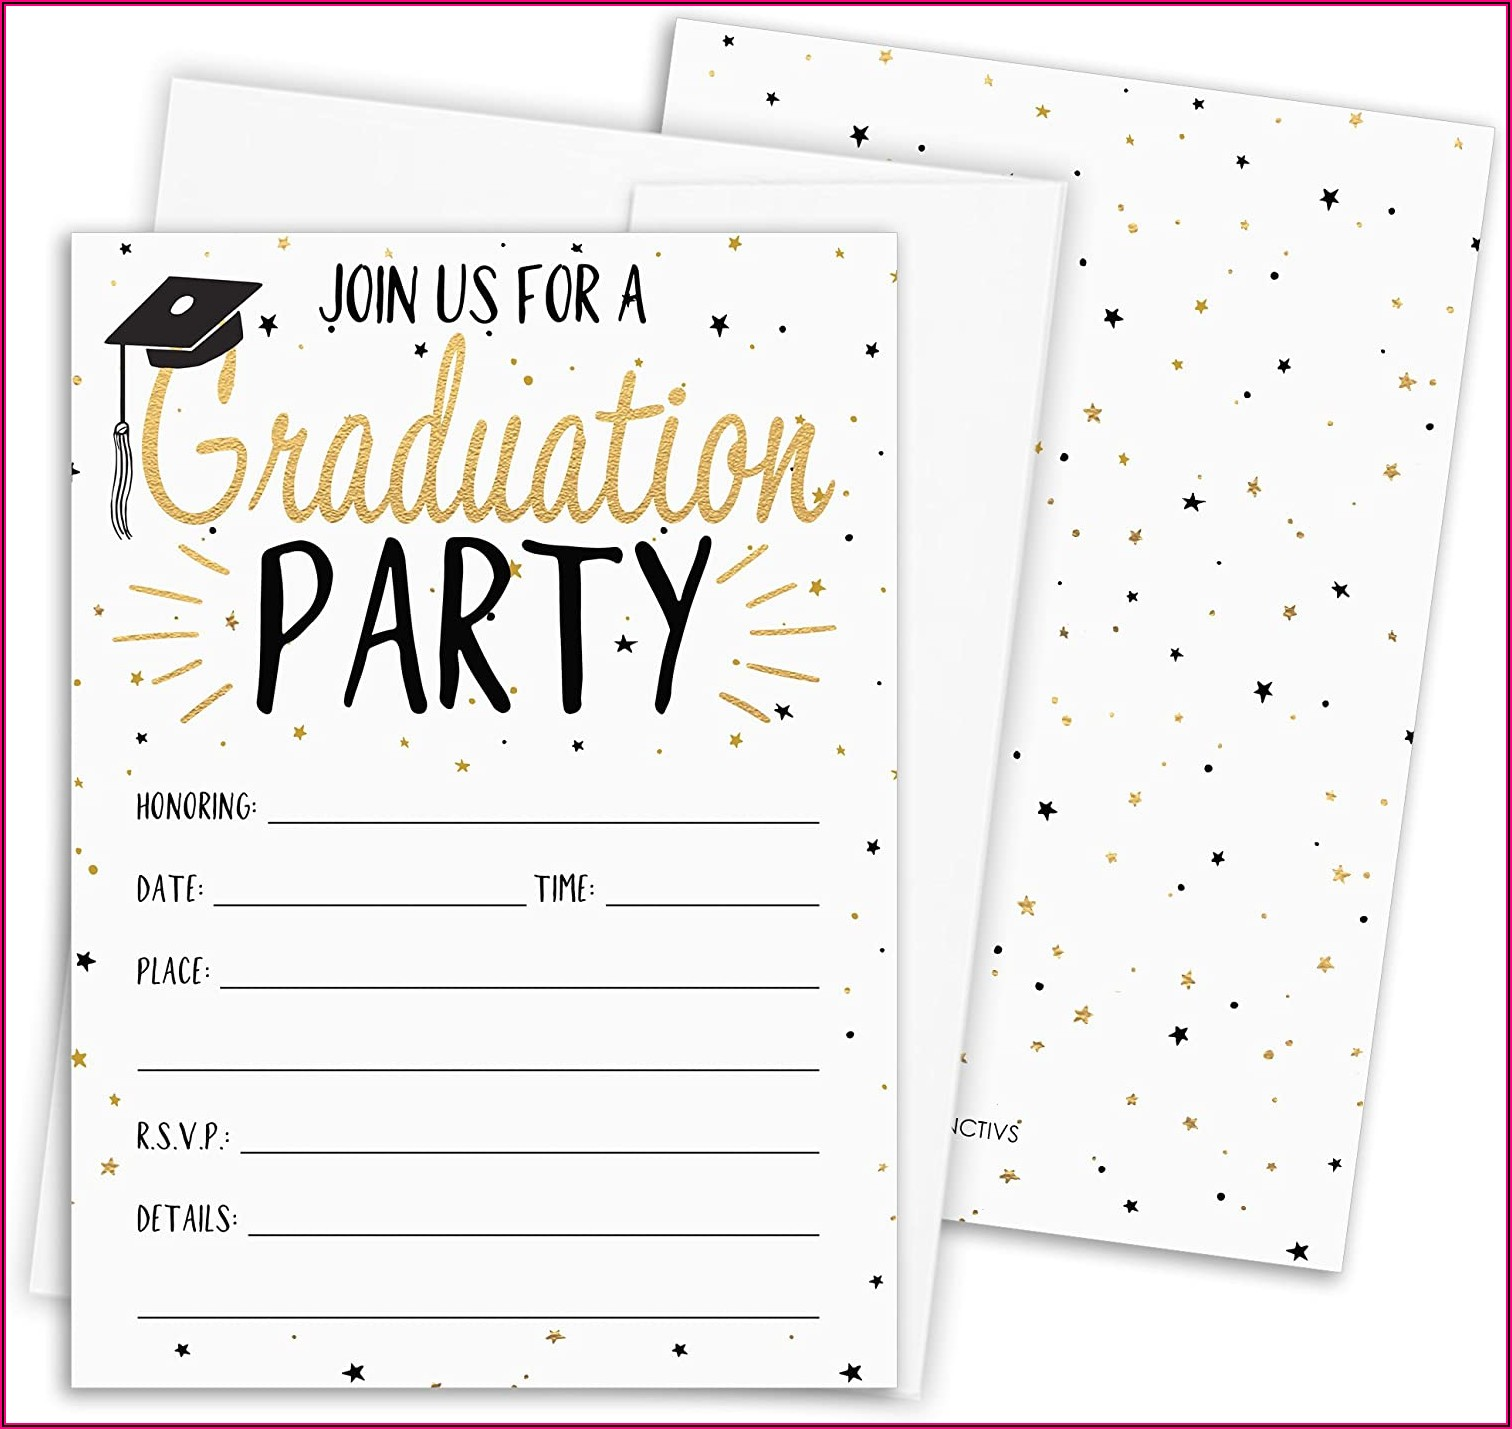 Graduation Announcements Fast Delivery